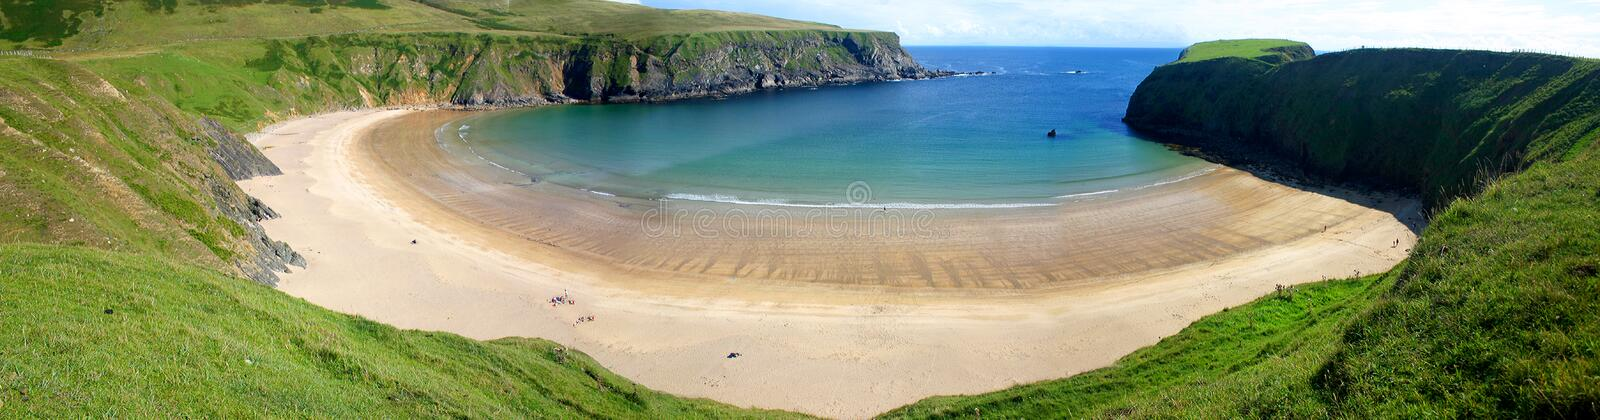 Beautiful bay in Ireland royalty free stock photography